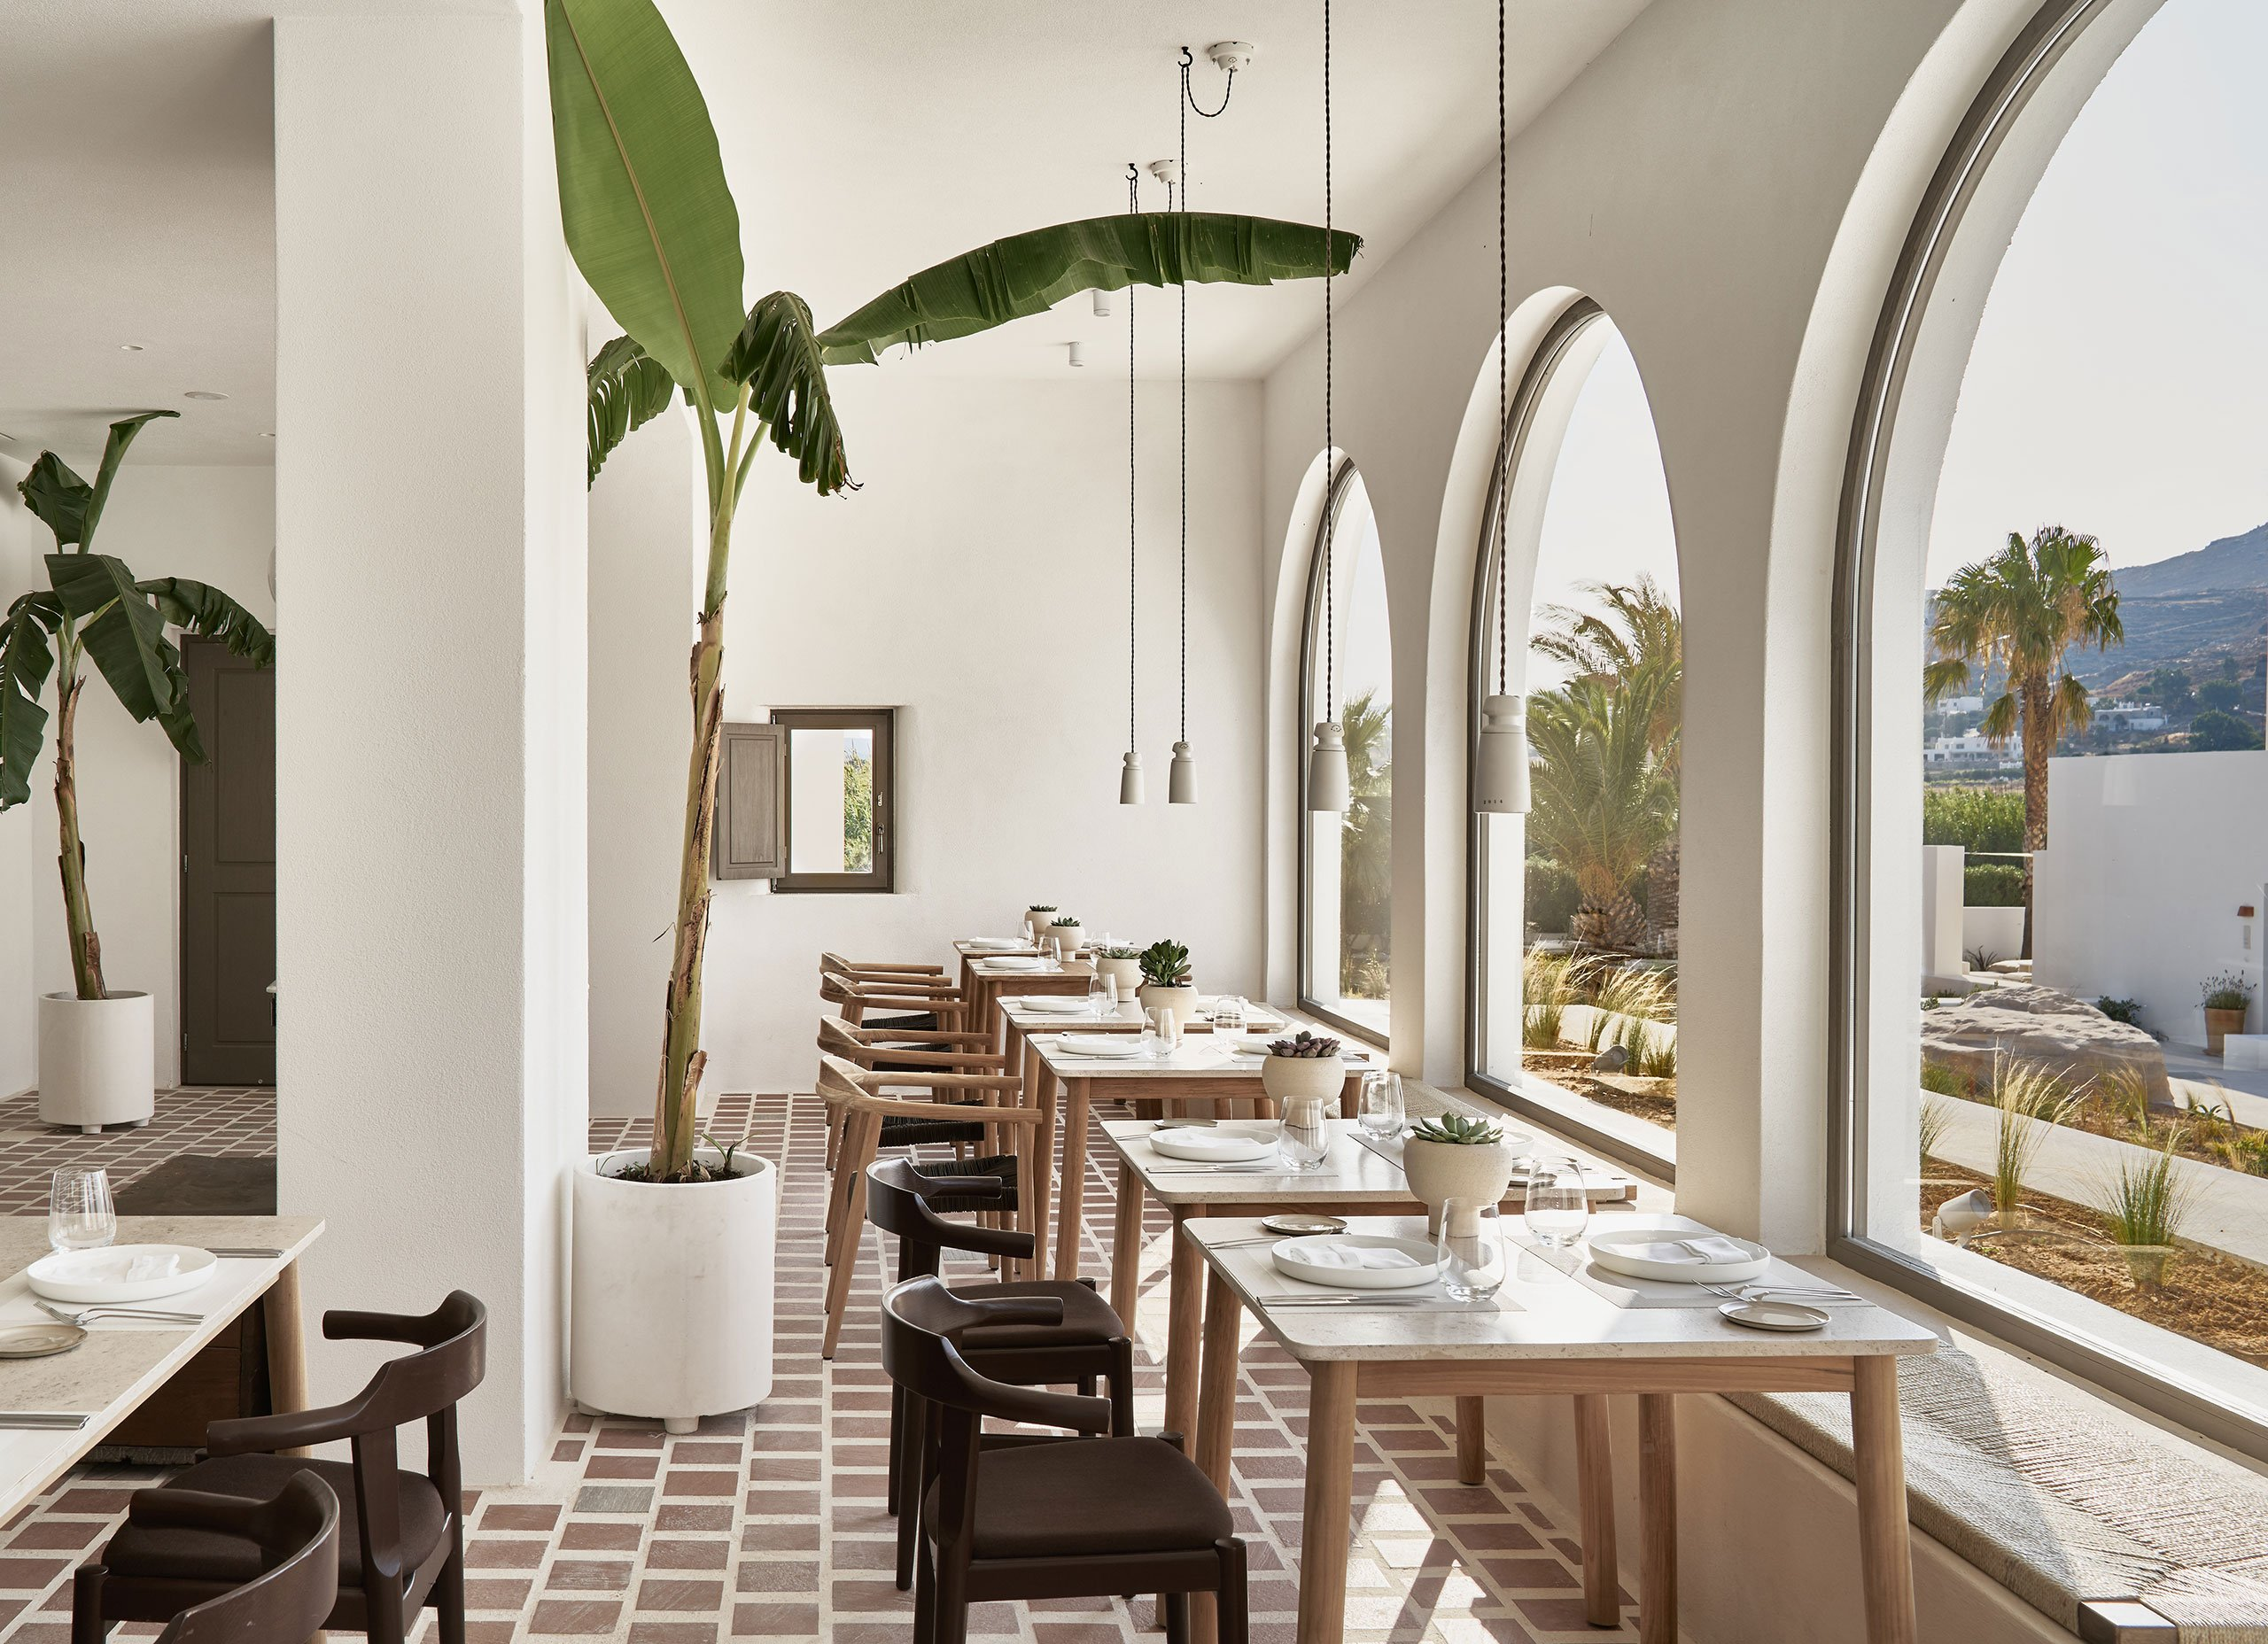 Mr.E restaurant offers an extraordinary gastronomic journey courtesy of celebrated Chef Alexandros Tsiotinis. © Parīlio a member of Design Hotels™ | Kolympithres,Naoussa Paros, Greece.Photo by Claus Brechenmacher & Reiner Baumann. Courtesy of Parīlio.